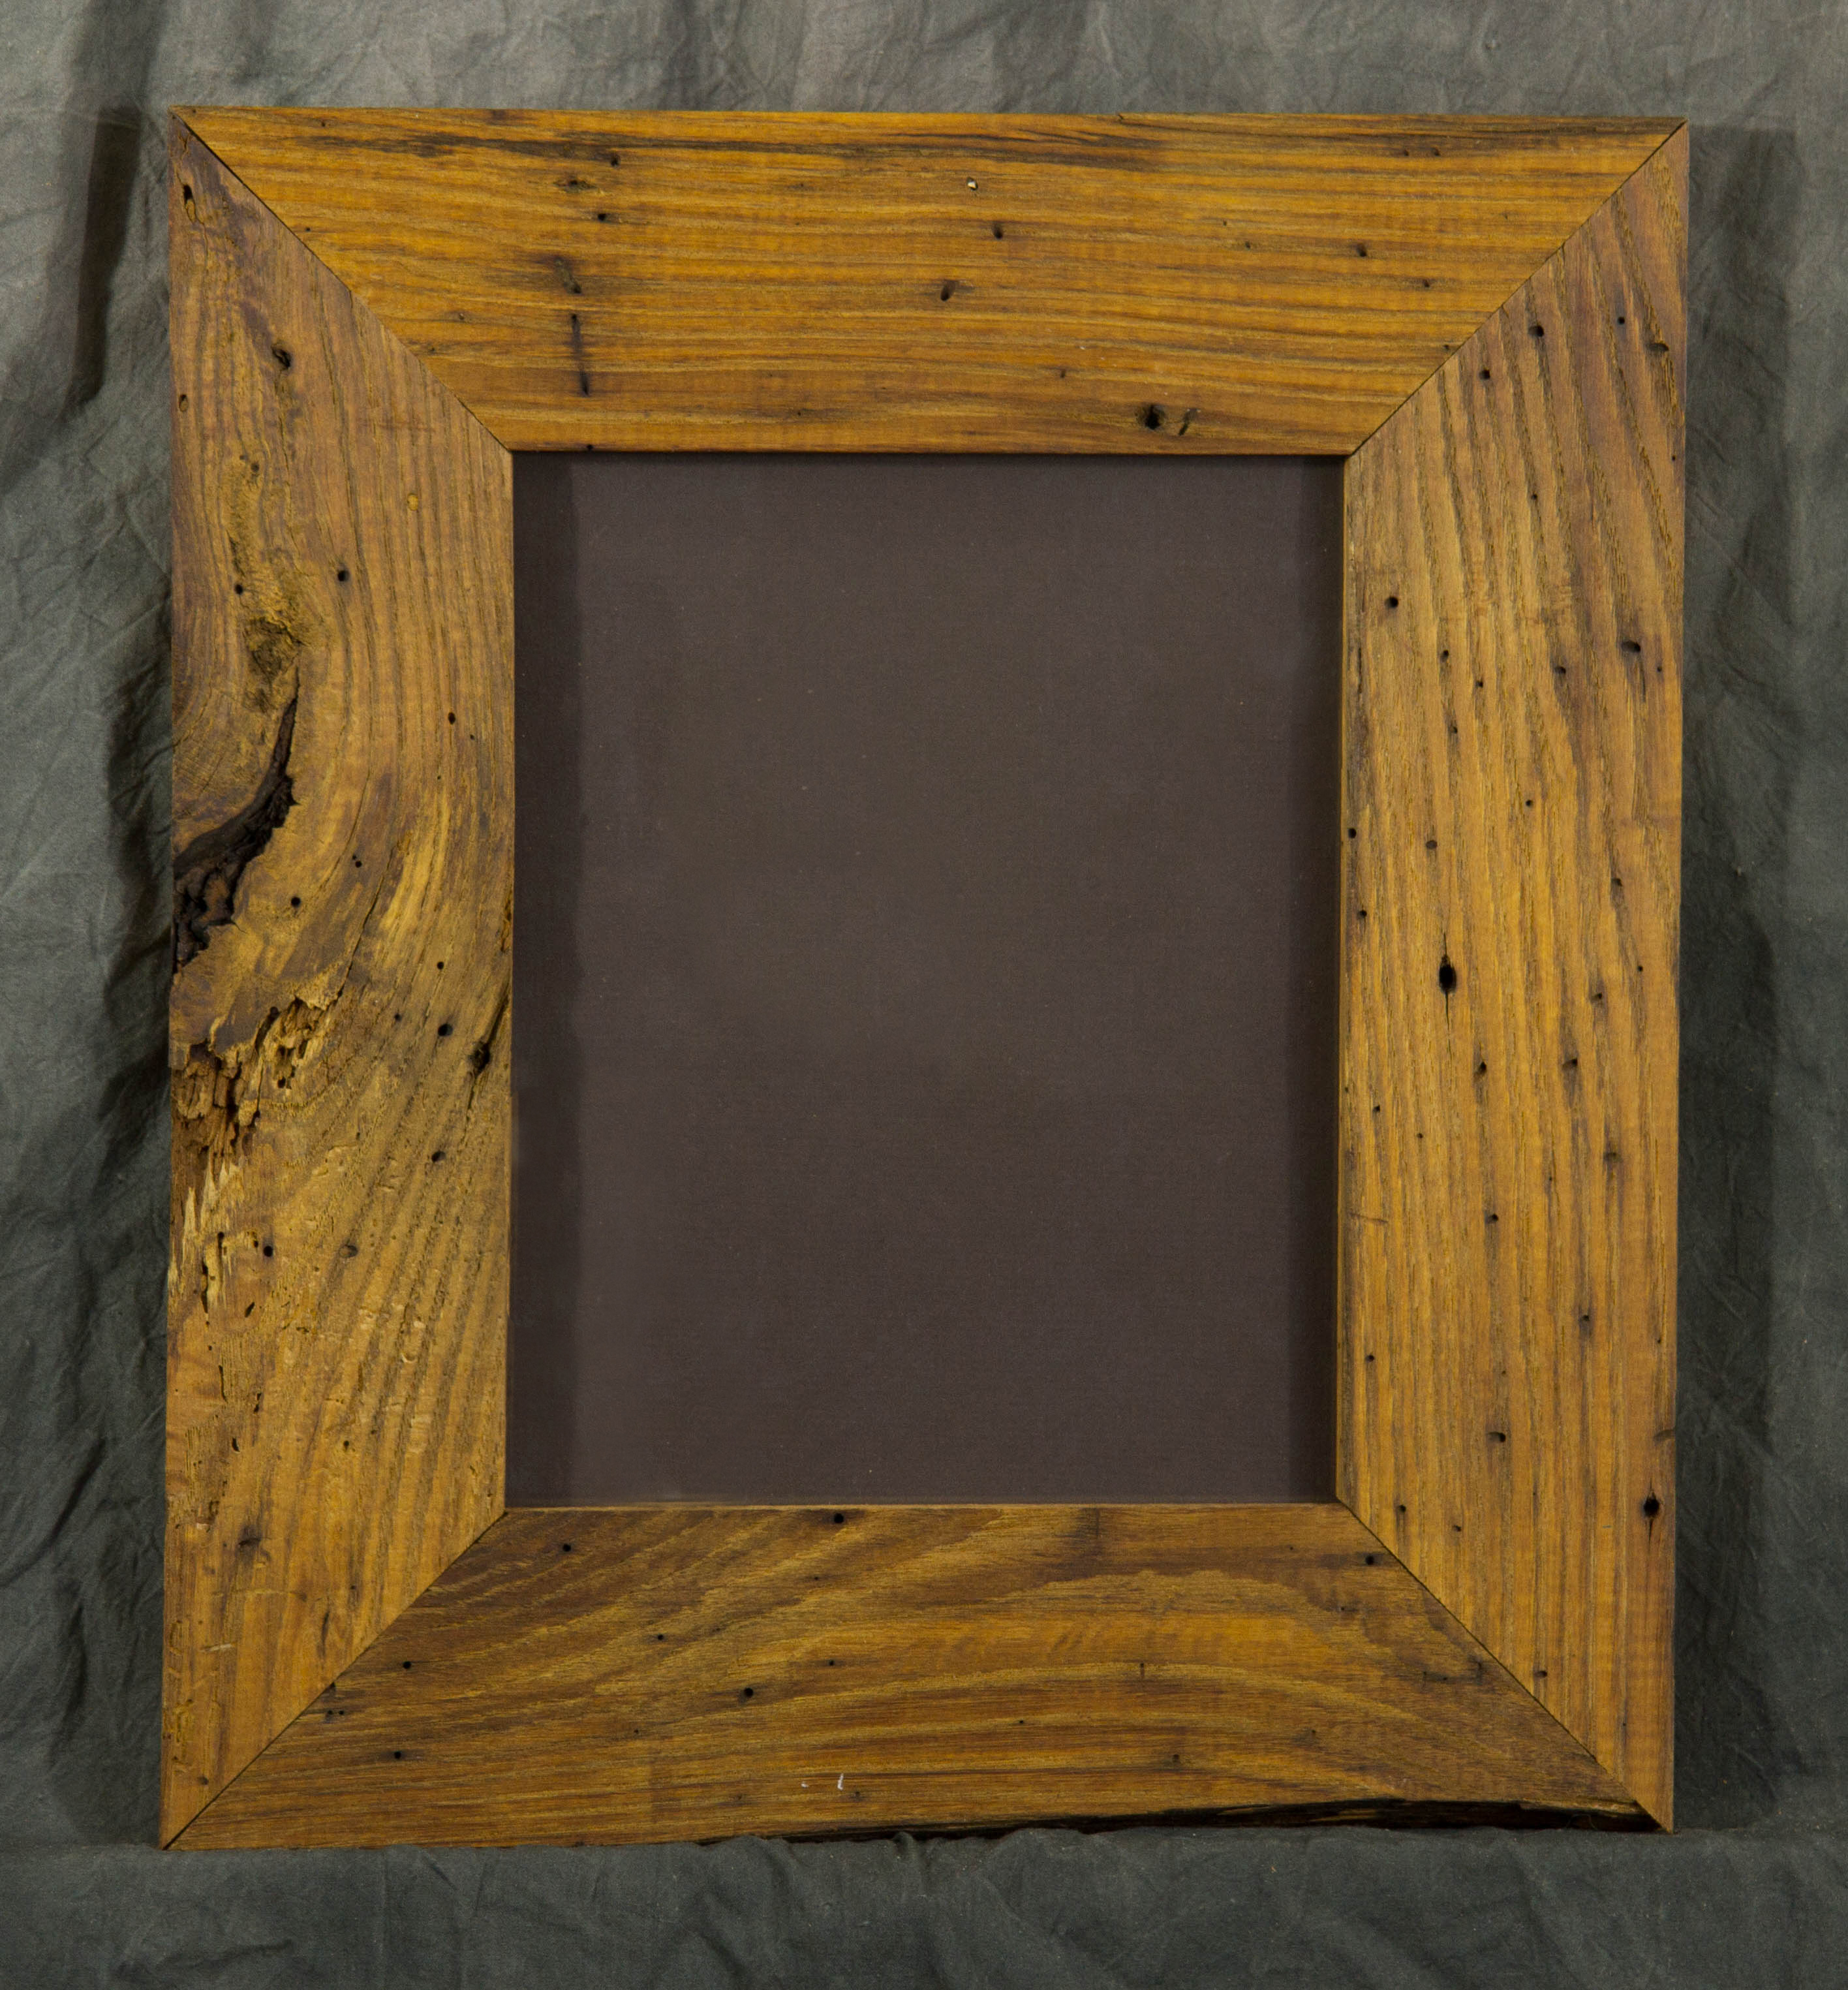 NATIVE EDGE PHOTO FRAMES | Custom handcrafted solid wood photo frames